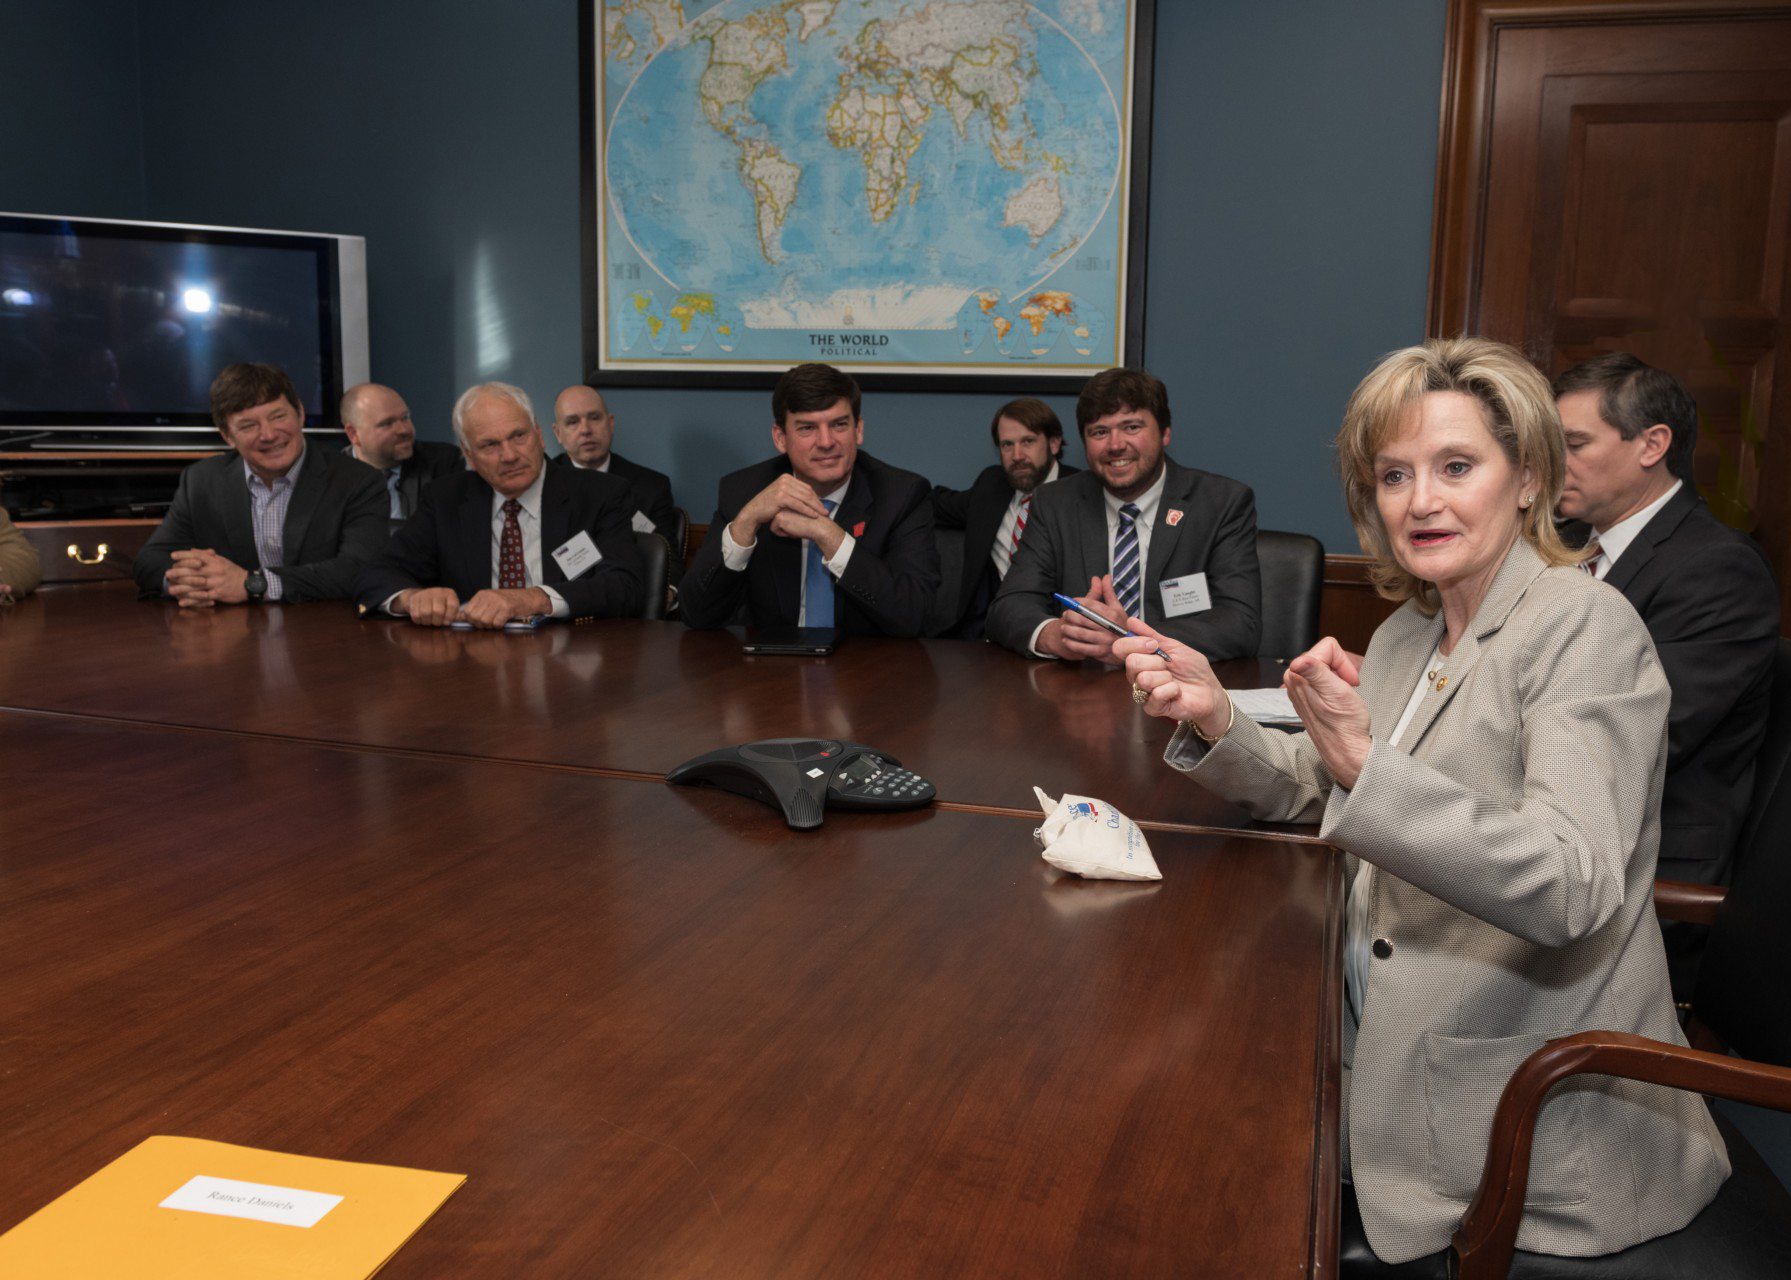 White woman holding pen and gesturing with hands holds court at table of white men wearing suits